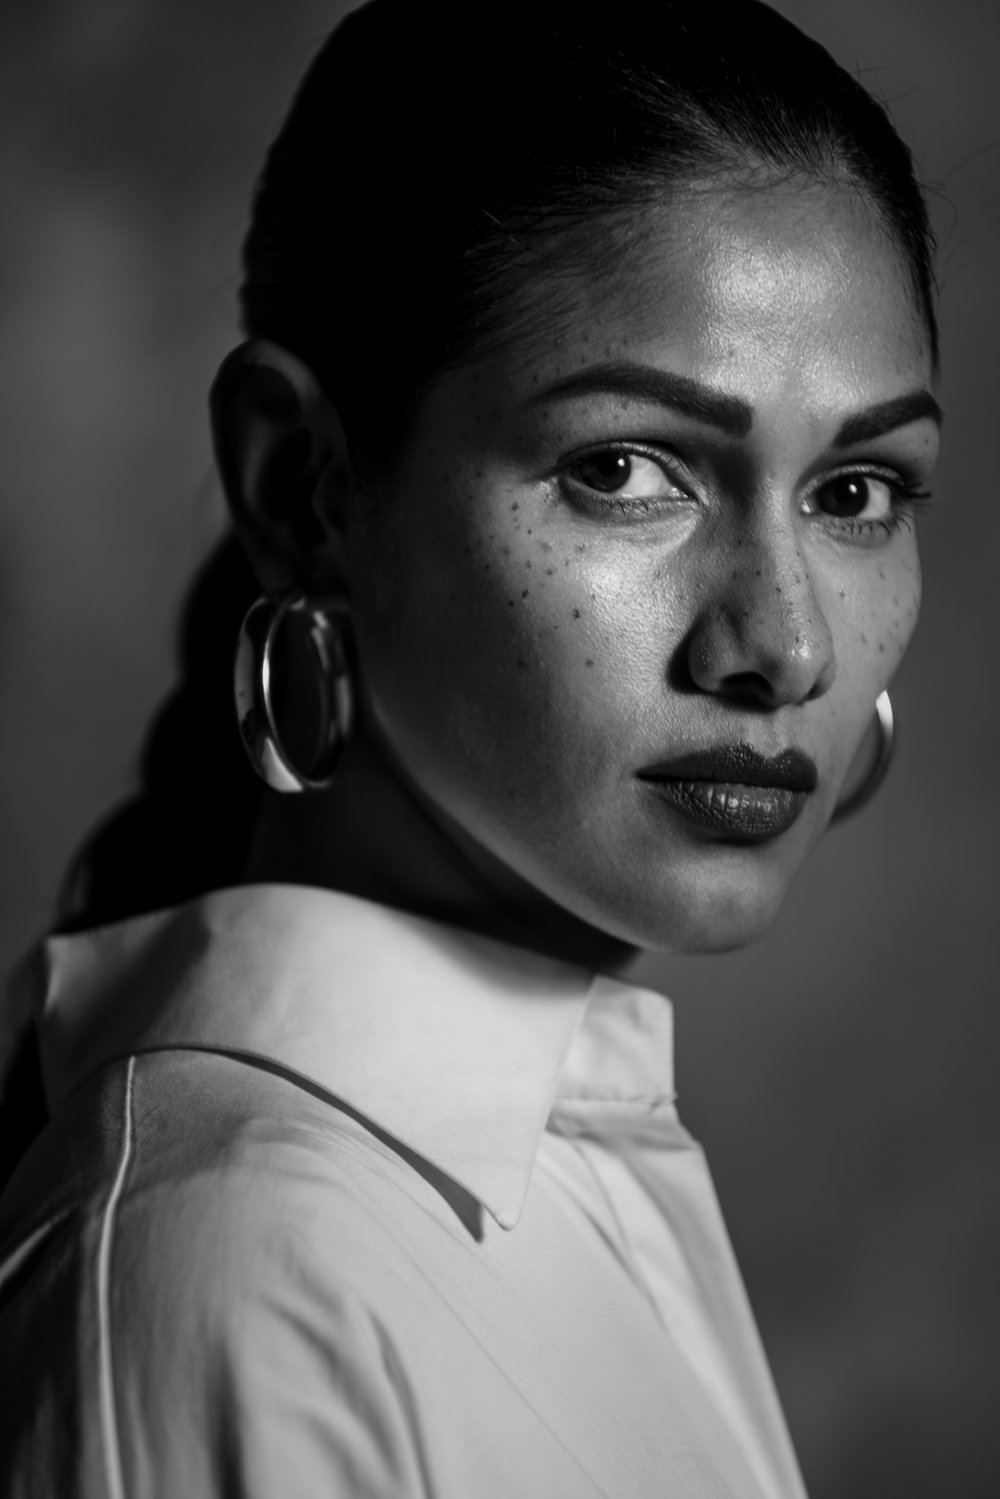 Concept and Styling by Shirin Salwan.  Photographed by Rafique Sayed.  Hair by Akshata Nandan Honawar.  Makeup by Alisha Bhambani Agarwal.